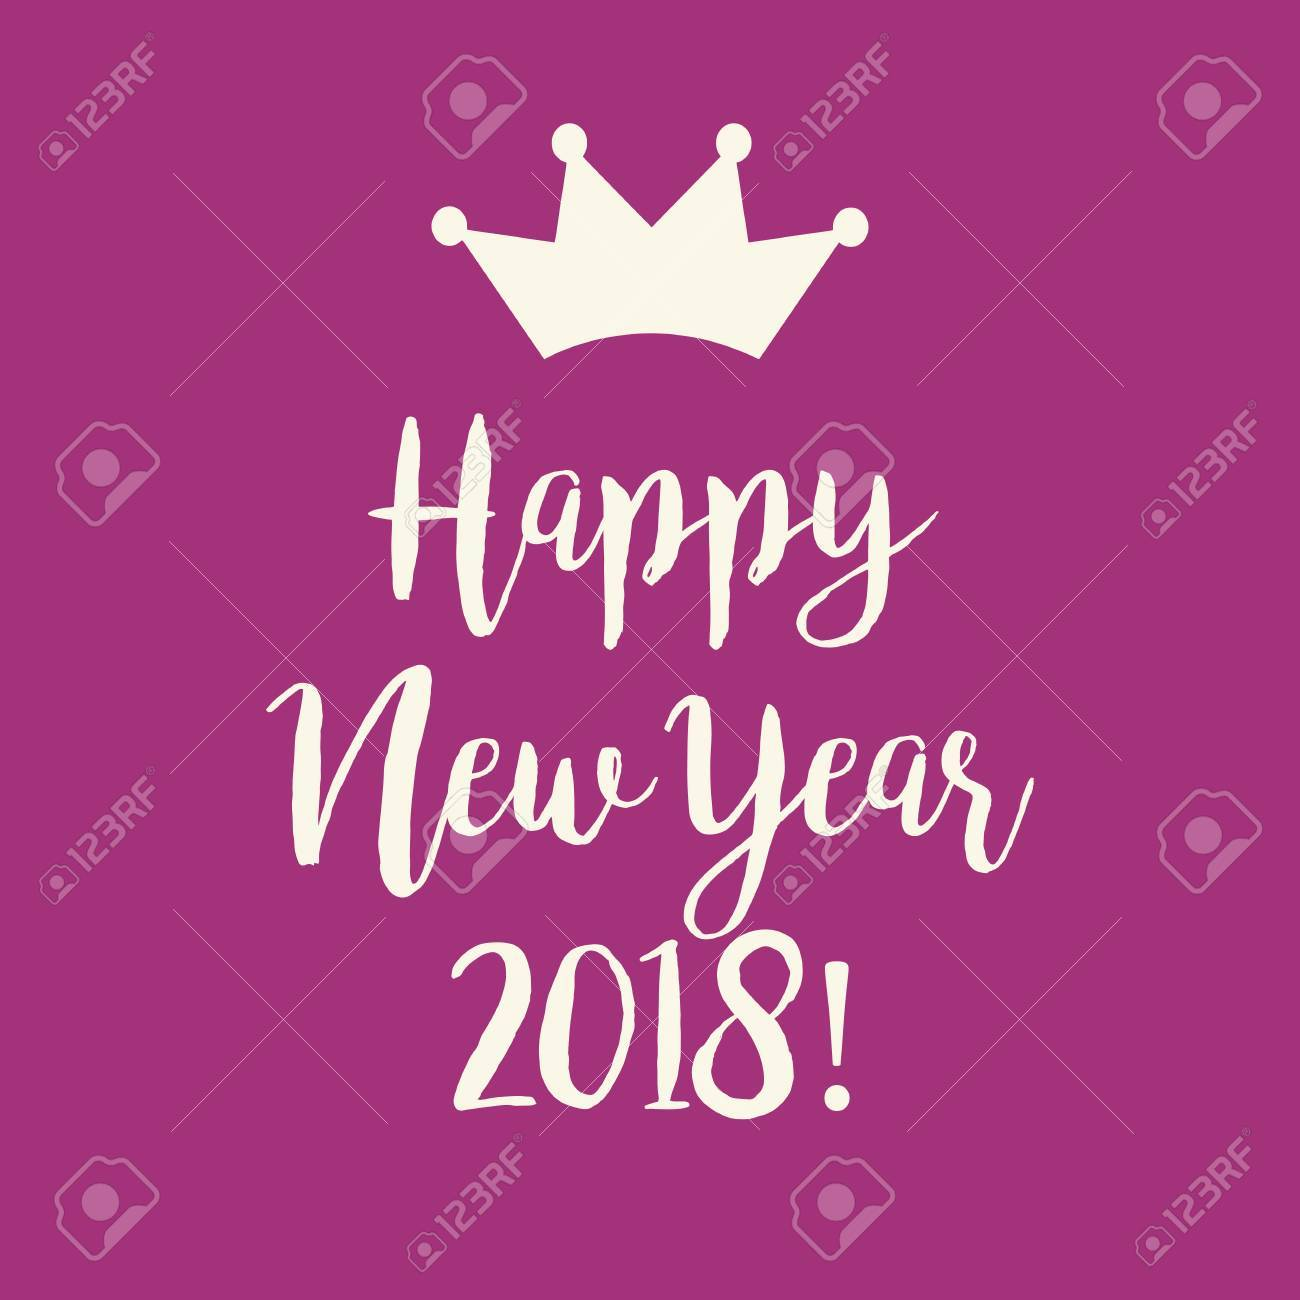 cute simple purple pink happy new year 2018 greeting card with a crown stock vector